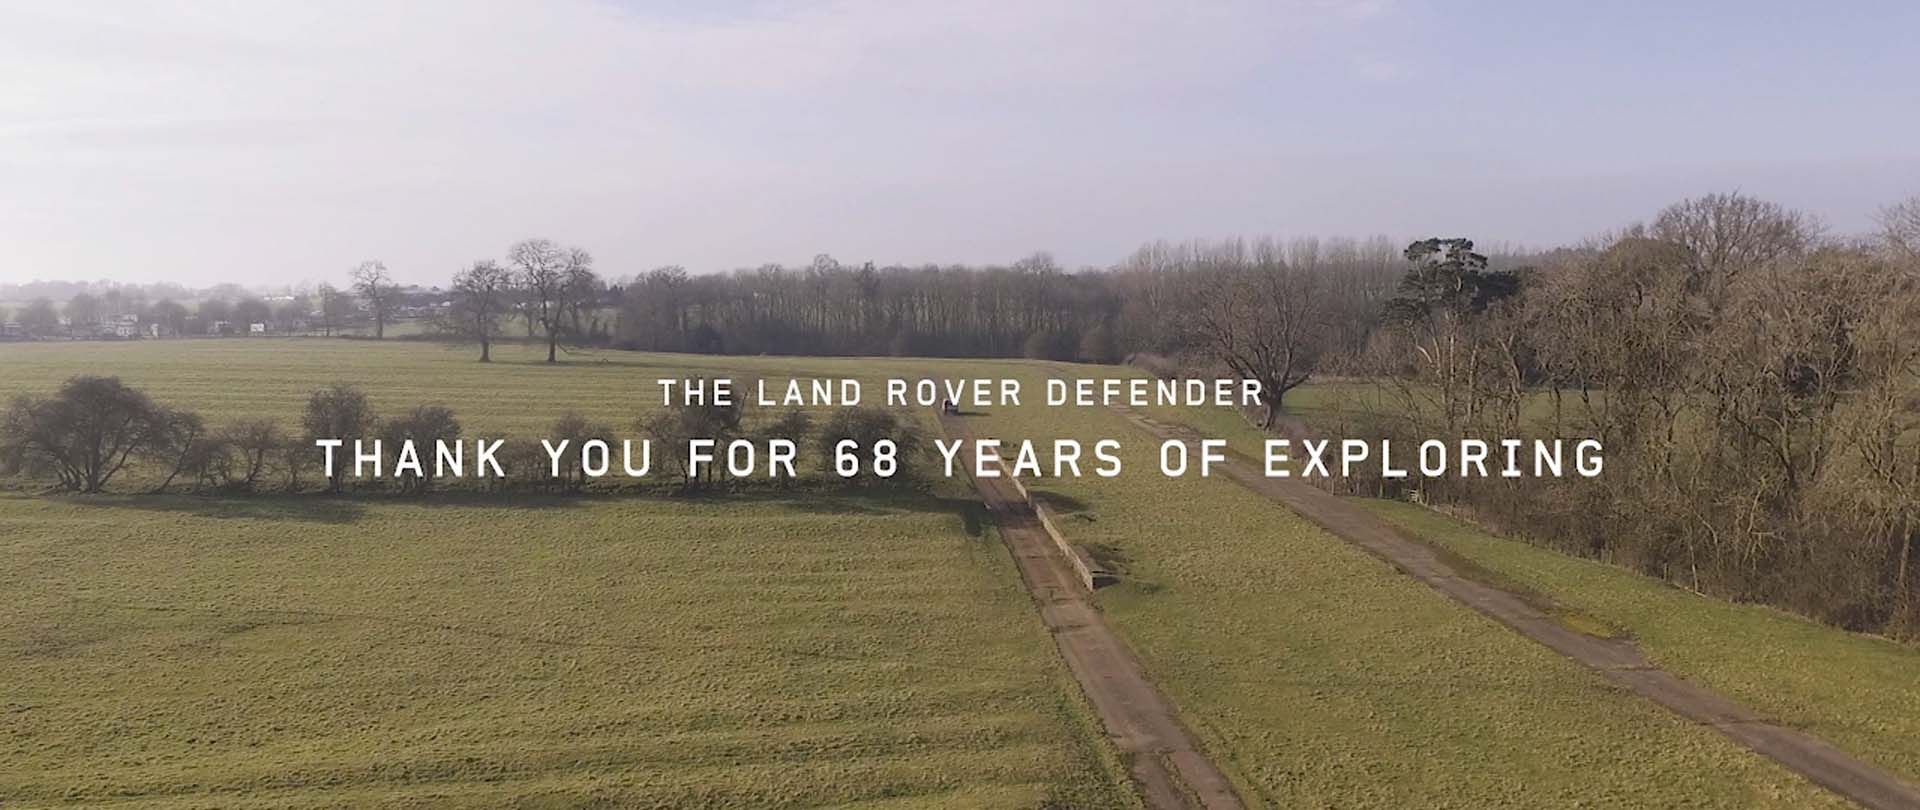 land rover - 68 years